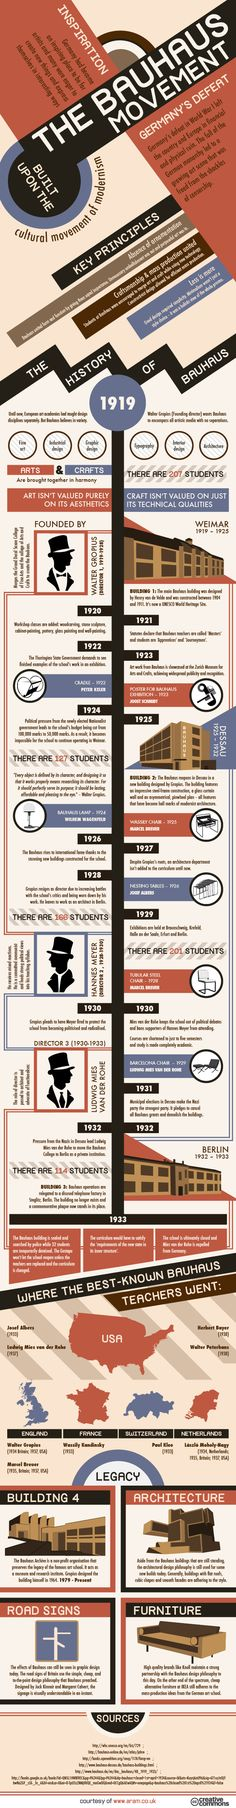 Infographic: The Bauhaus Movement and the School that Started it All | ArchDaily